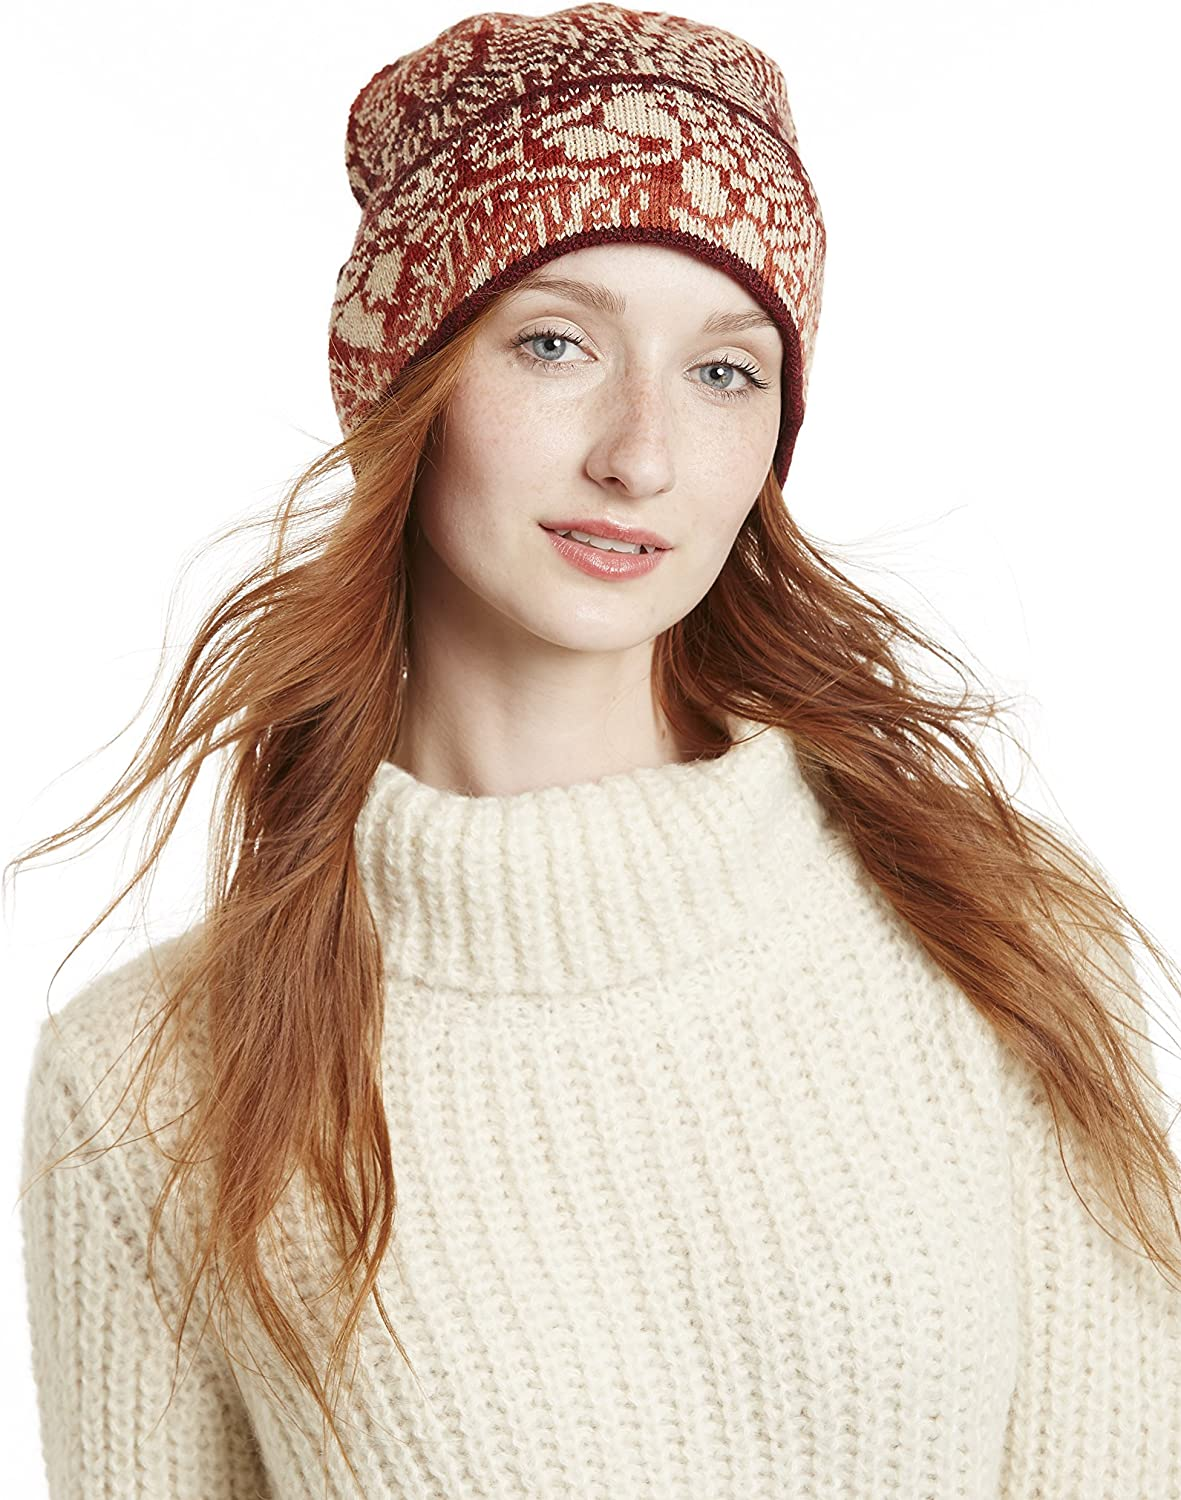 Invisible World Women's 100% Alpaca Raleigh Mall Free Shipping Cheap Bargain Gift Wool Unisex Knit Beanie Hat